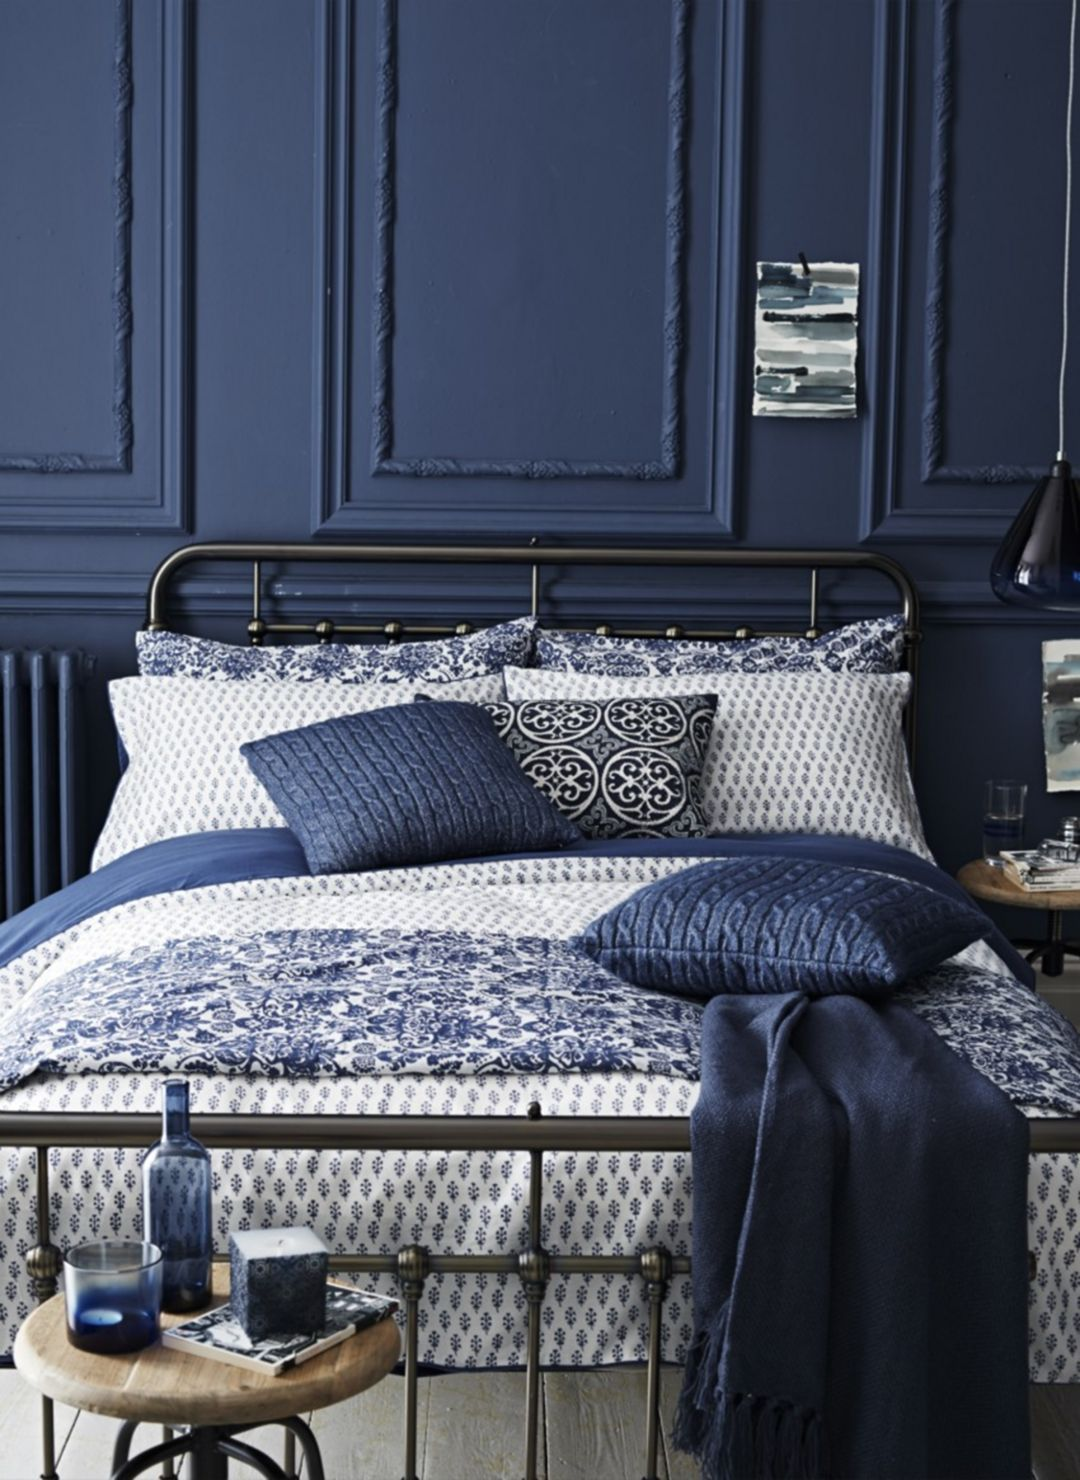 Top 10 Cool Navy And White Bedroom Design Ideas To Make ...